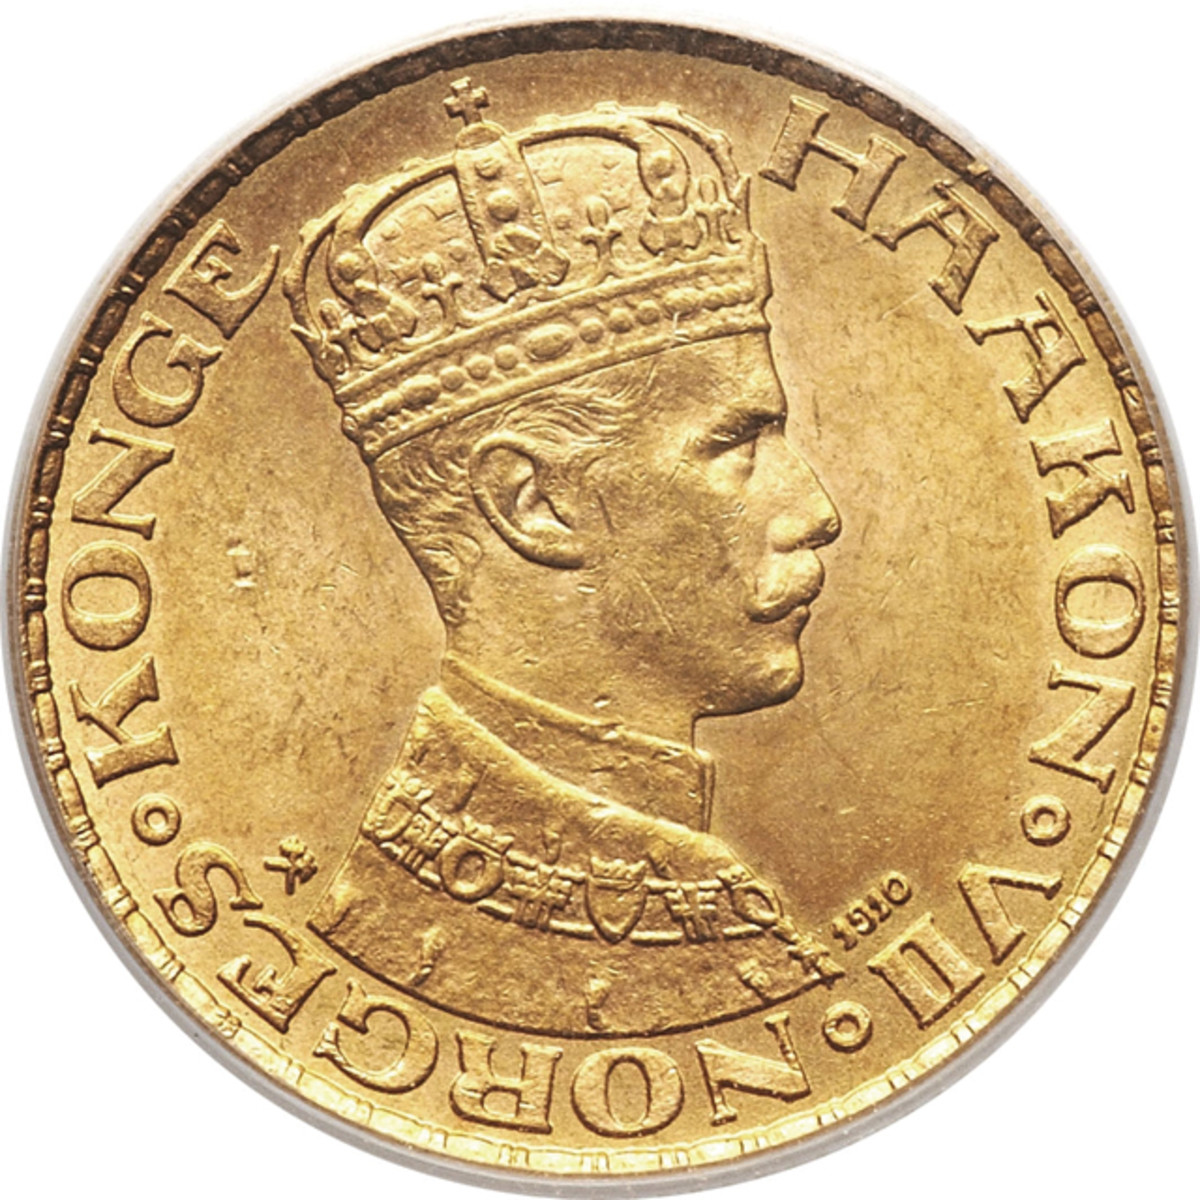 The gold coins would have included many 10 kroner of 1910, KM-375, issued in the name of Haakon VII. At the time of the invasion he threatened abdication if his government cooperated with the Germans.